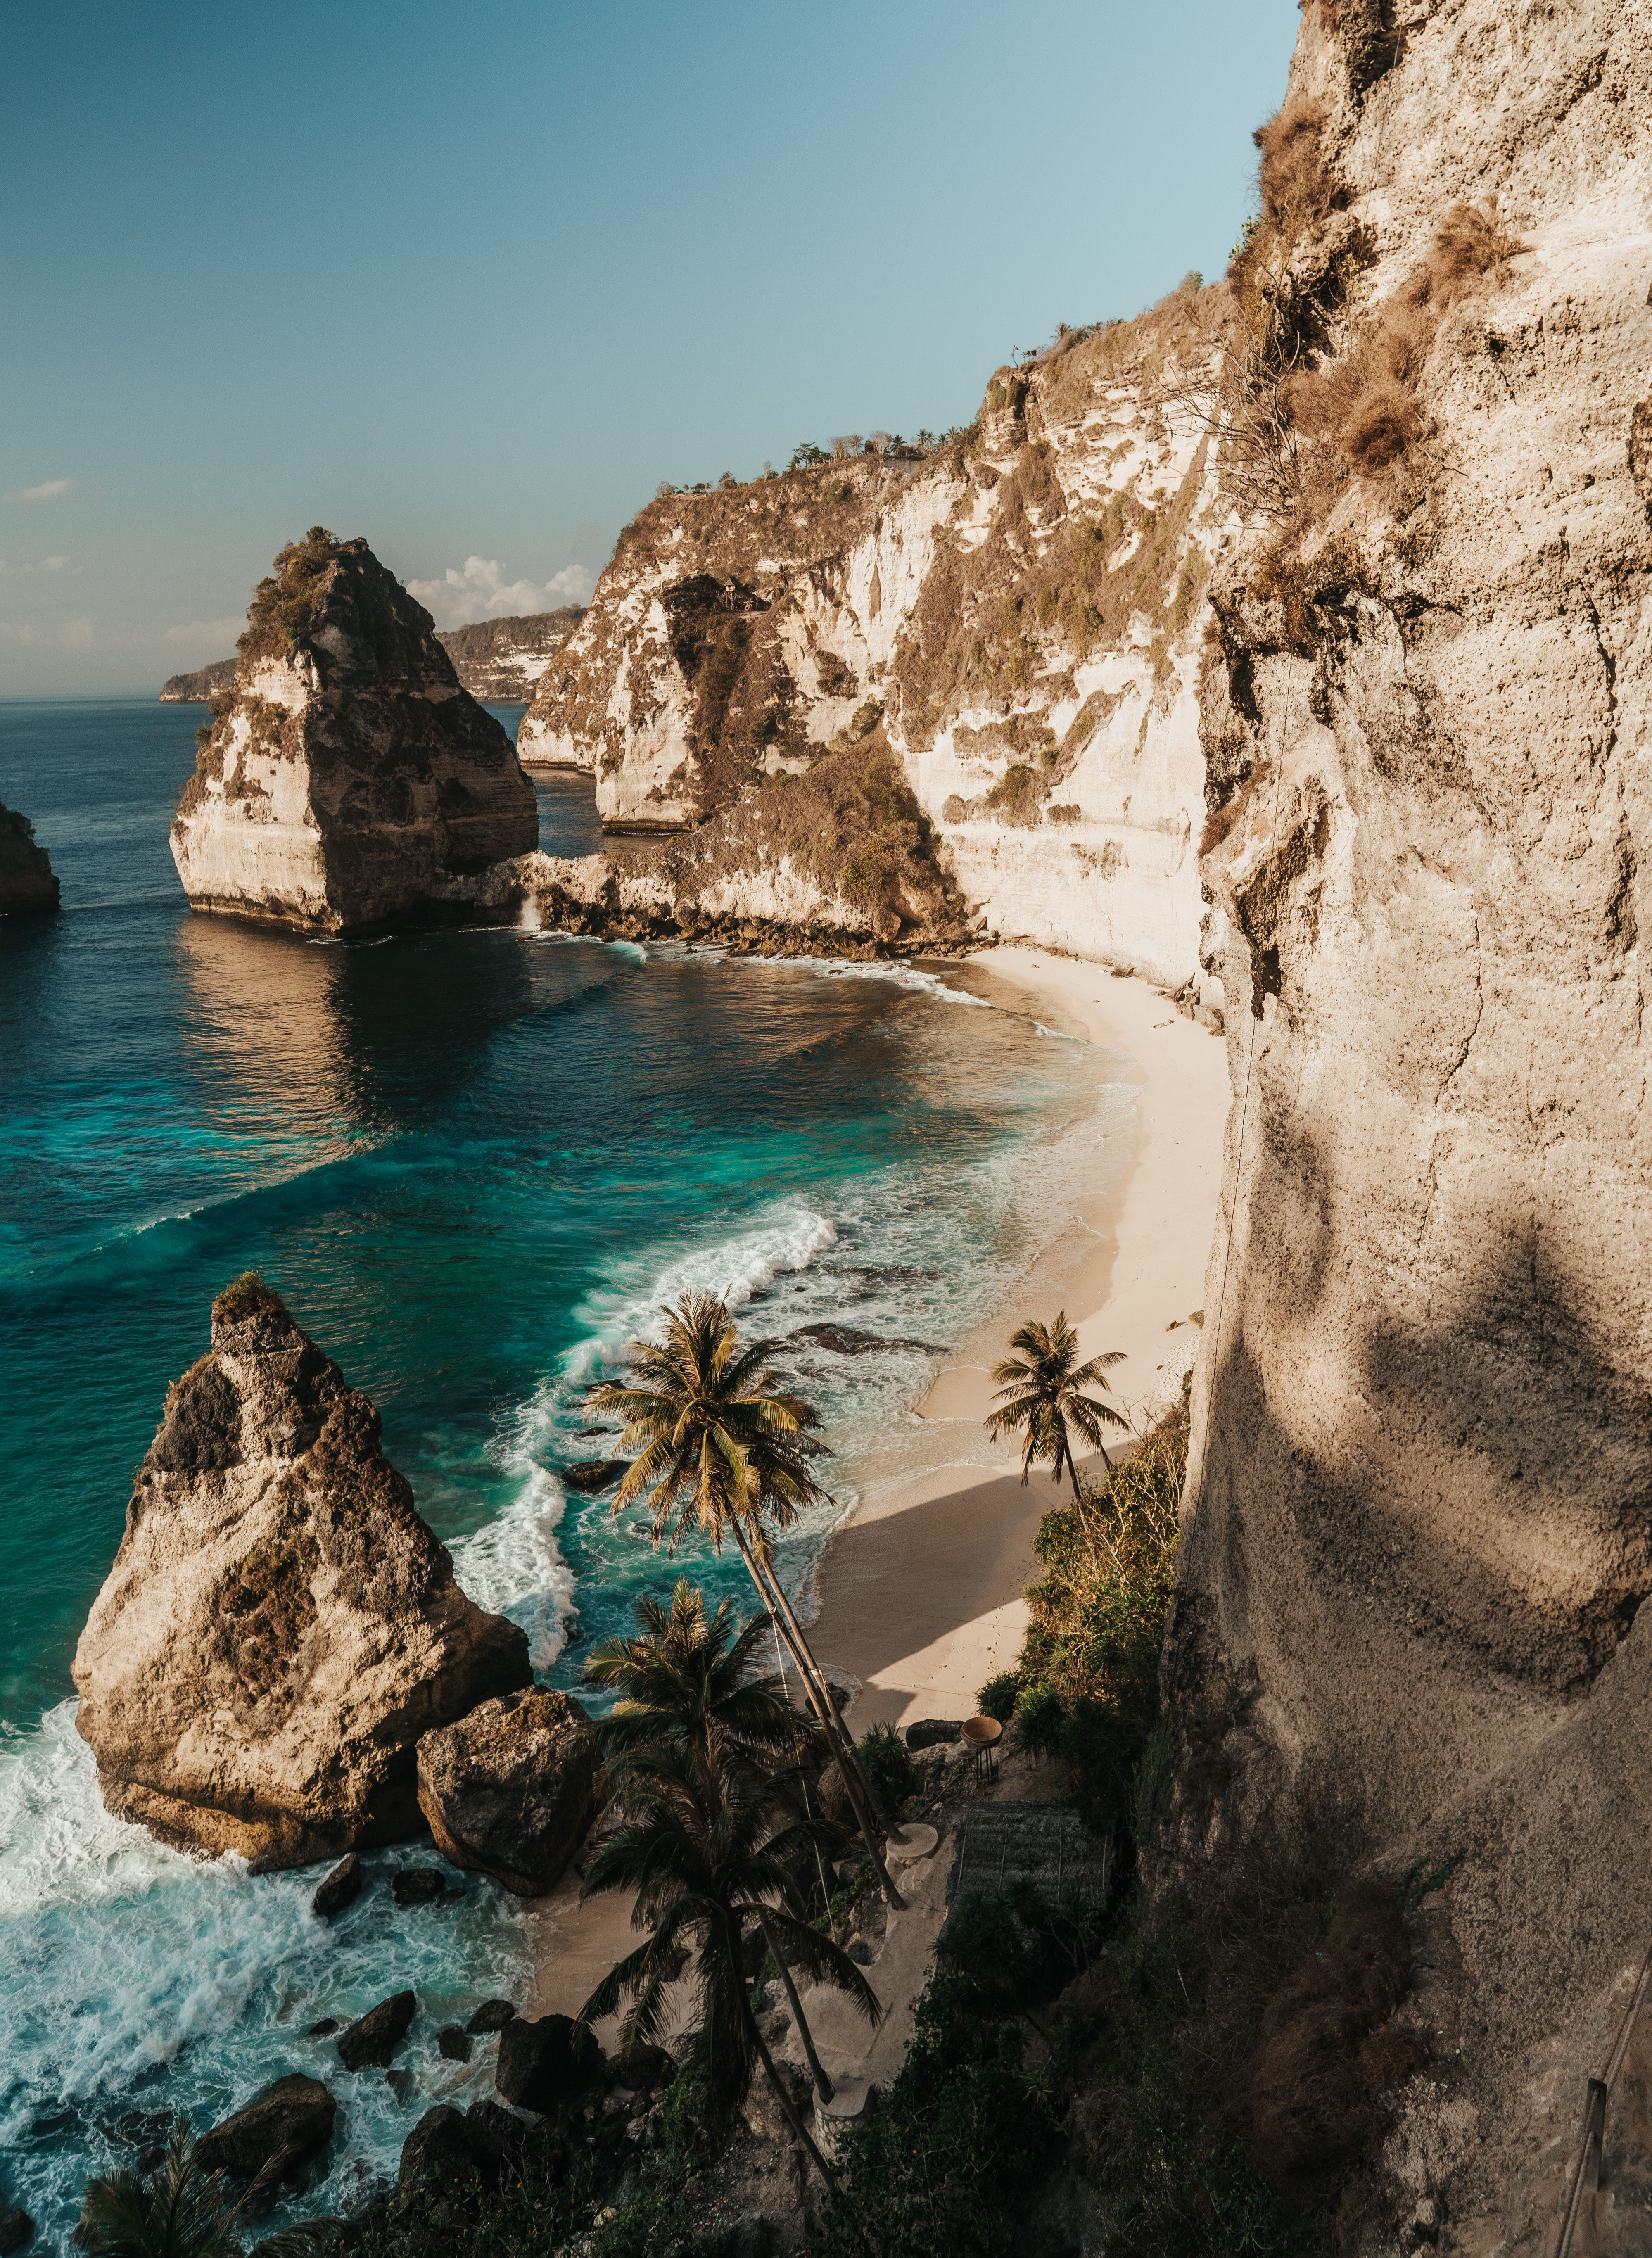 Nusa Penida is a tropical paradise full of adventures located an hour away from Bali. Here you will find the most breathtaking scenery, viewpoints, crystal clear water and majestic sea creatures you can swim with. It is the perfect place to retreat to if you're wanting to get away from the bustling Bali vibes.